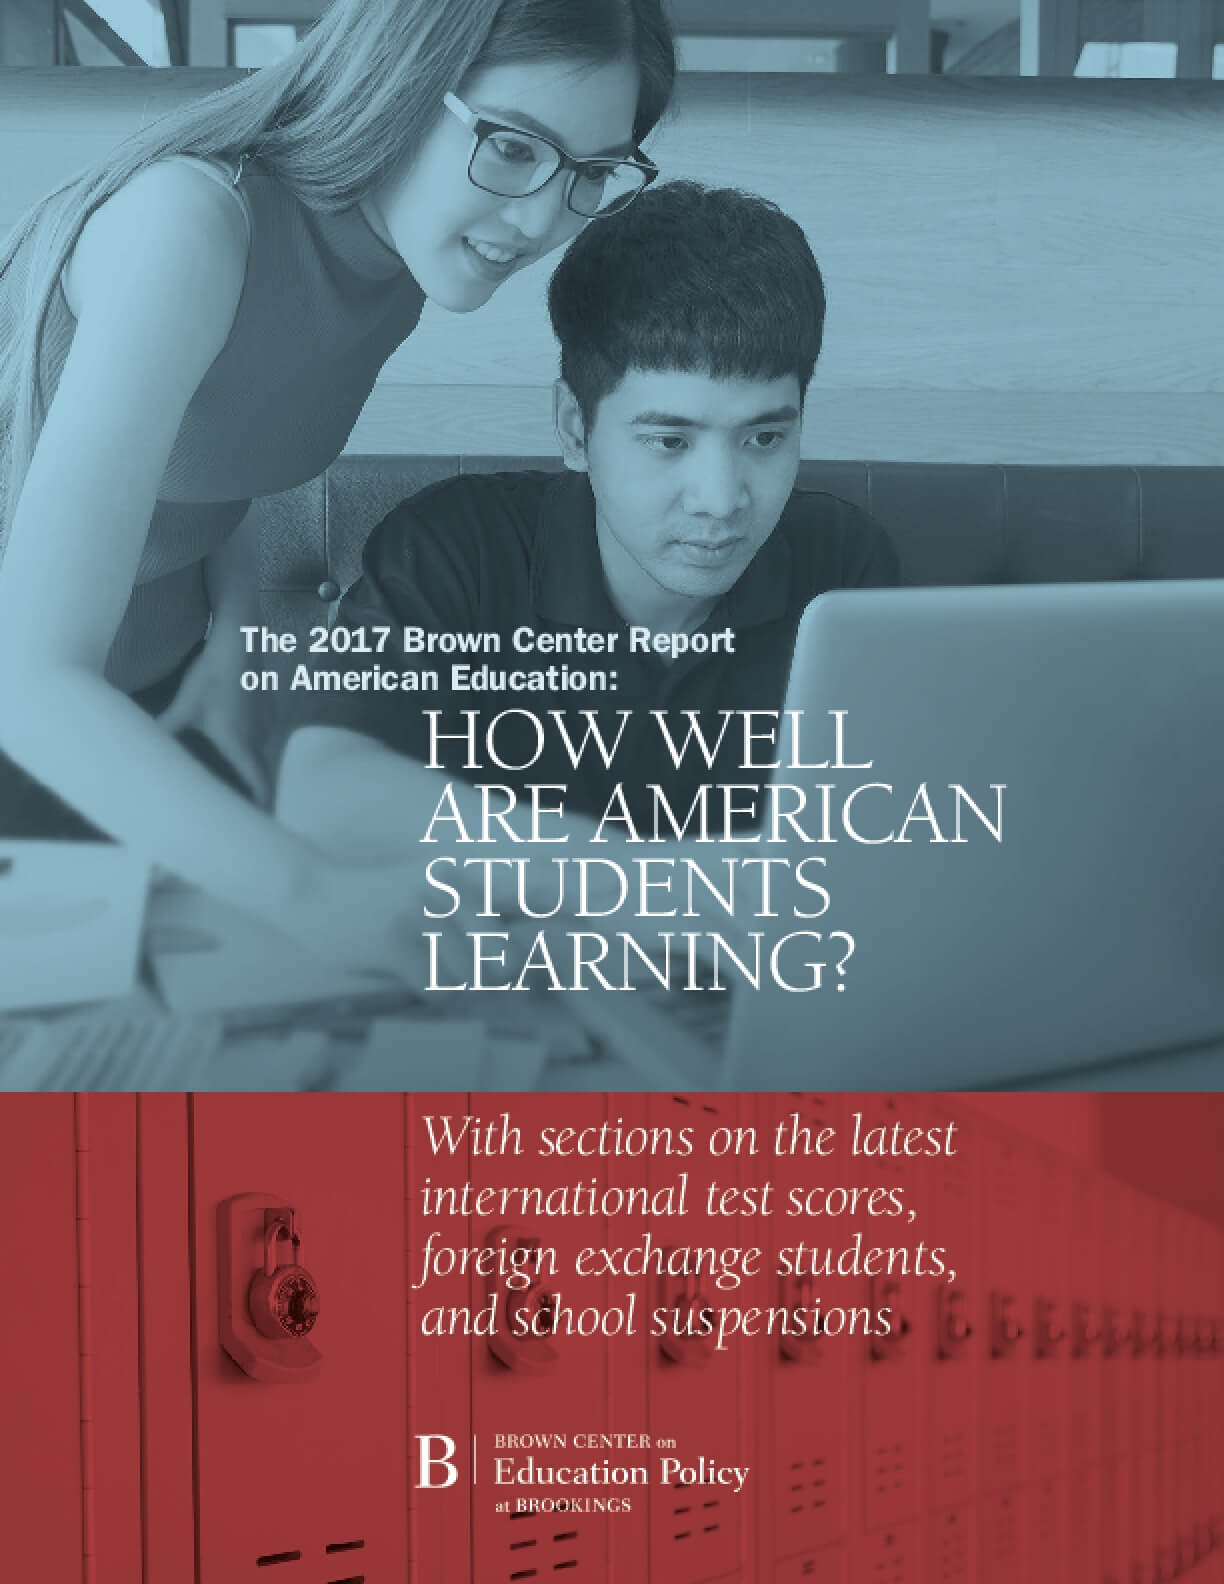 The 2017 Brown Center Report on American Education: How Well Are American Students Learning?